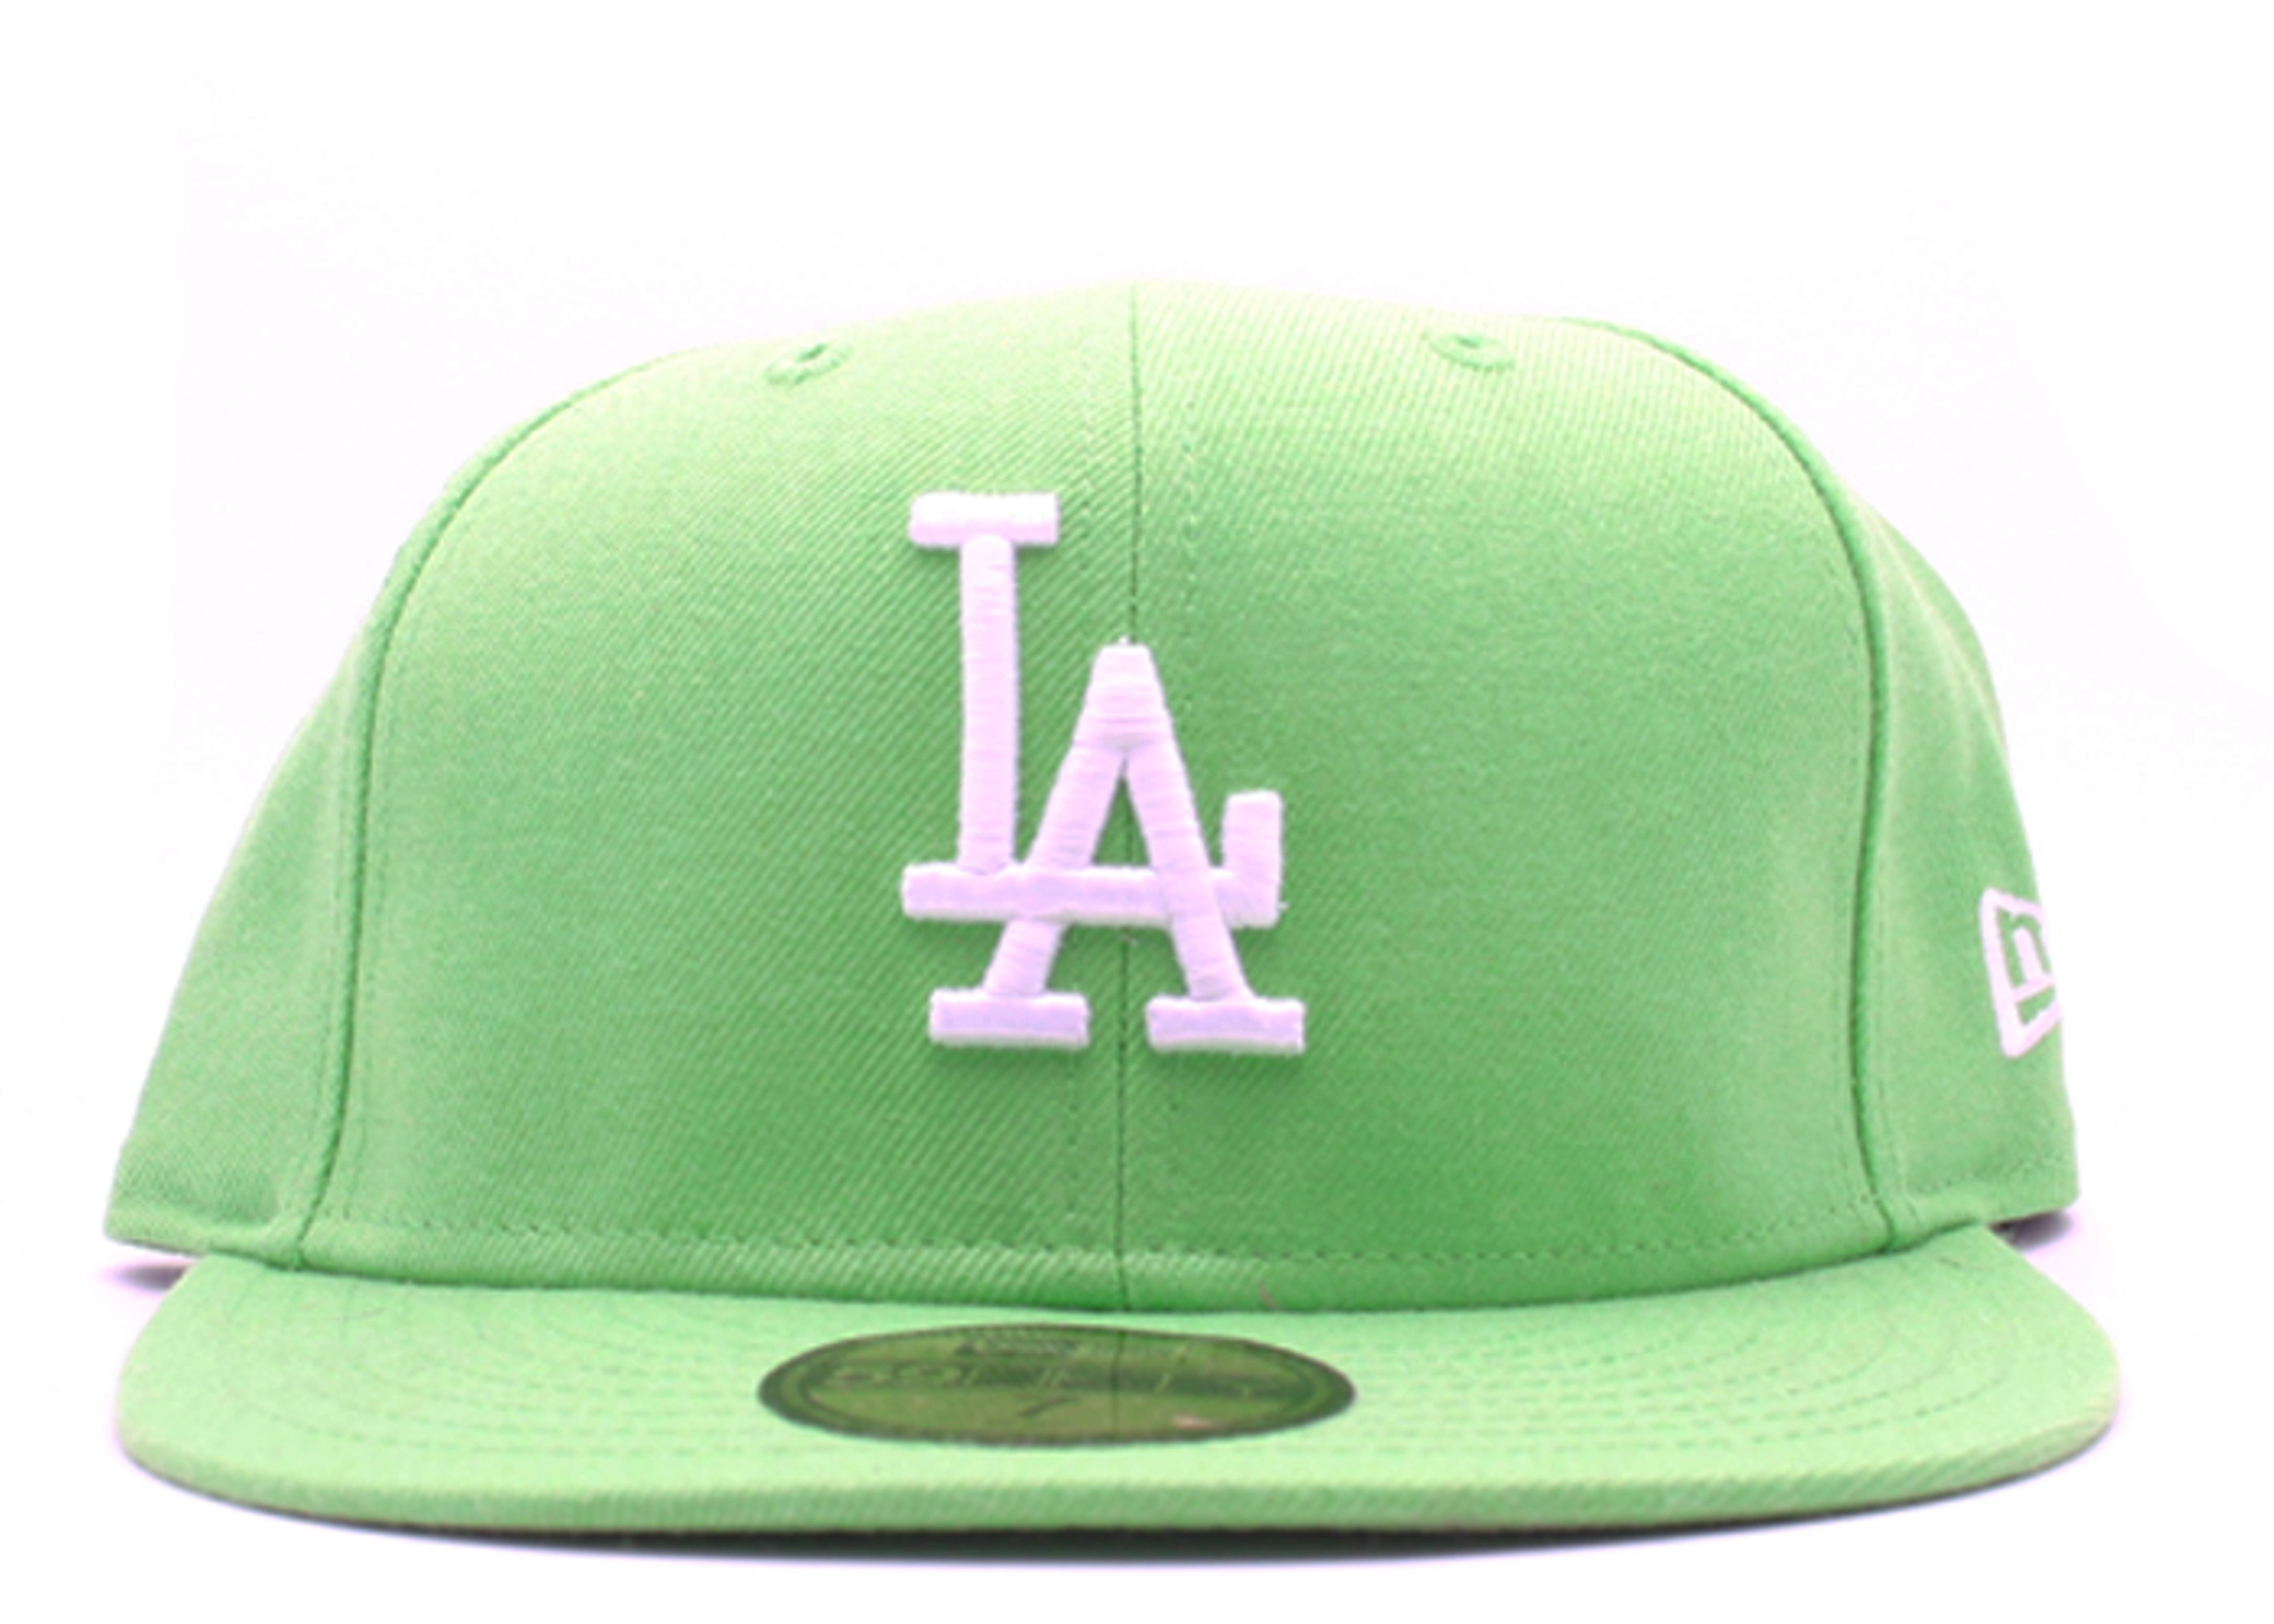 los angeles dodgers fitted